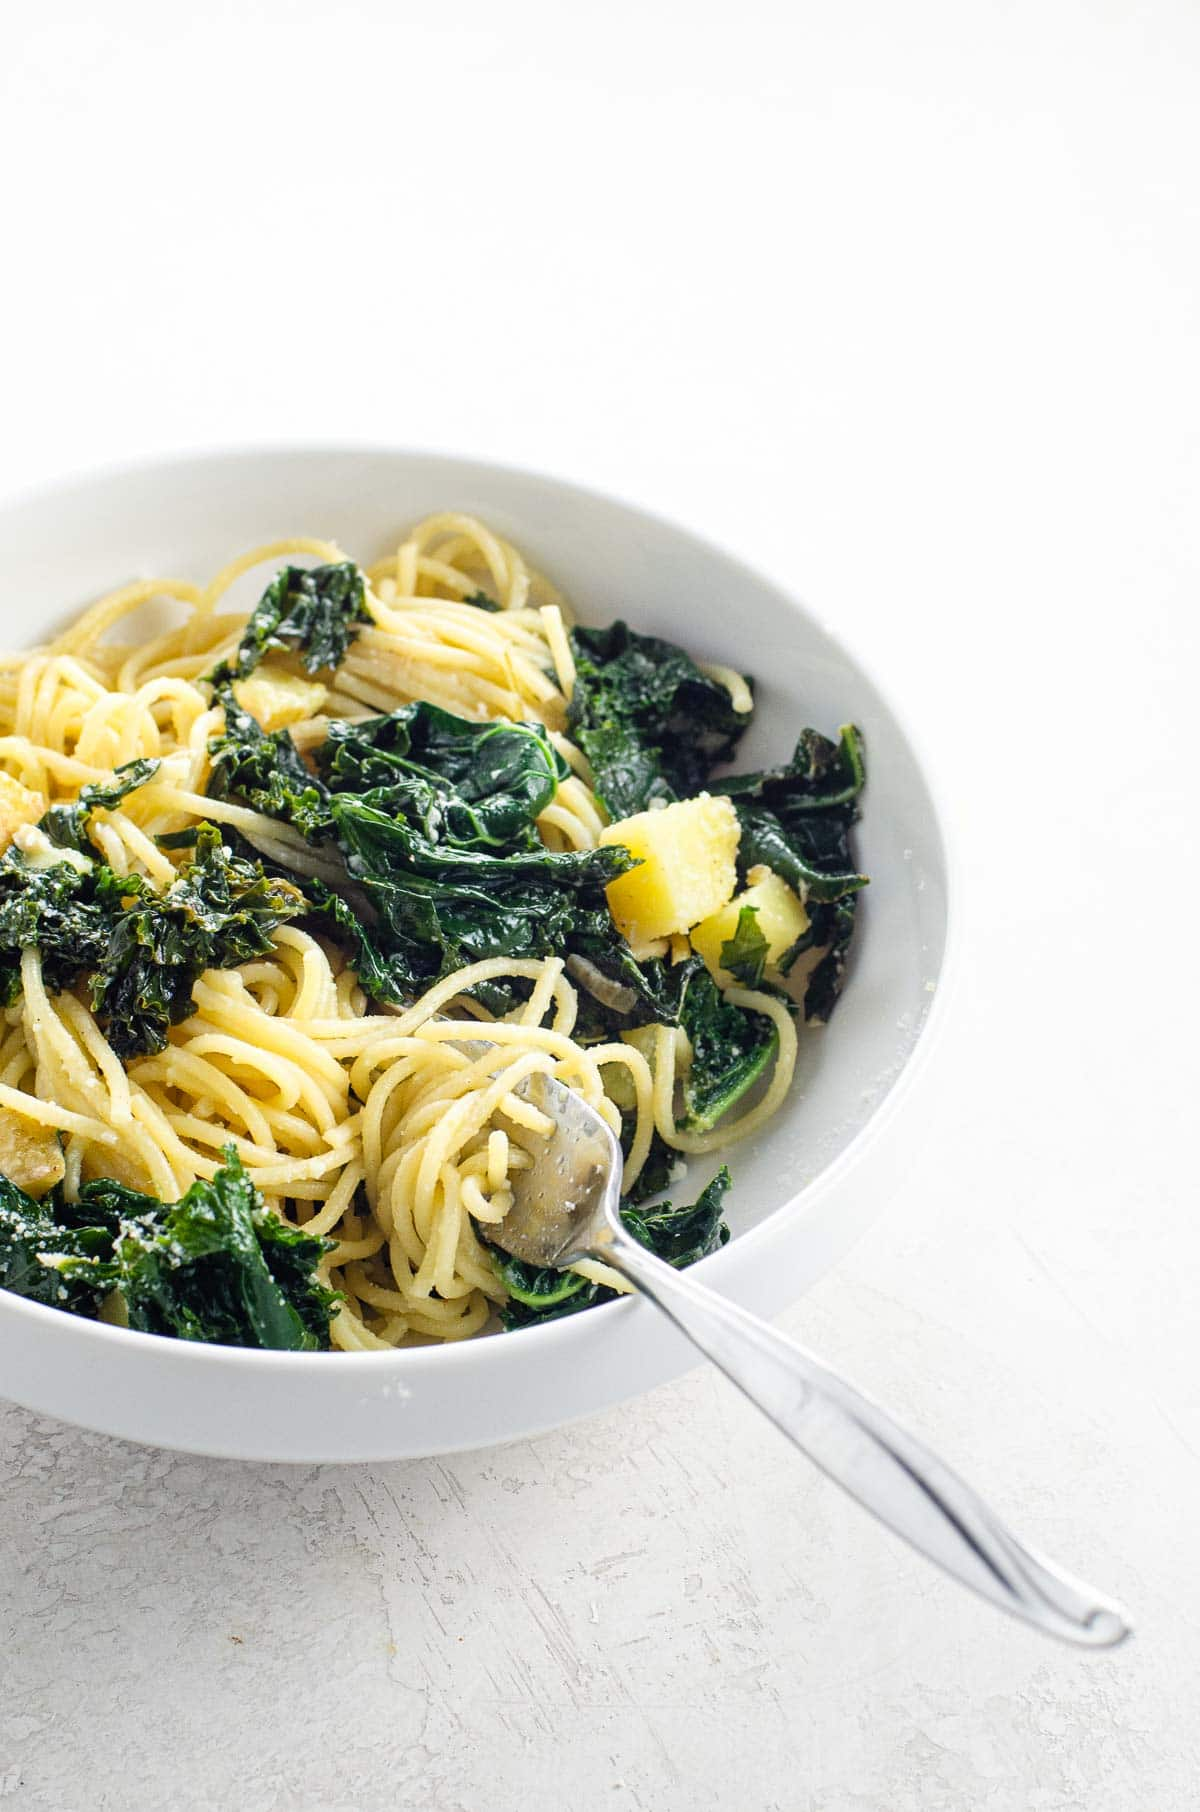 creamy kale pasta with potatoes, lemon, and capers in a white bowl